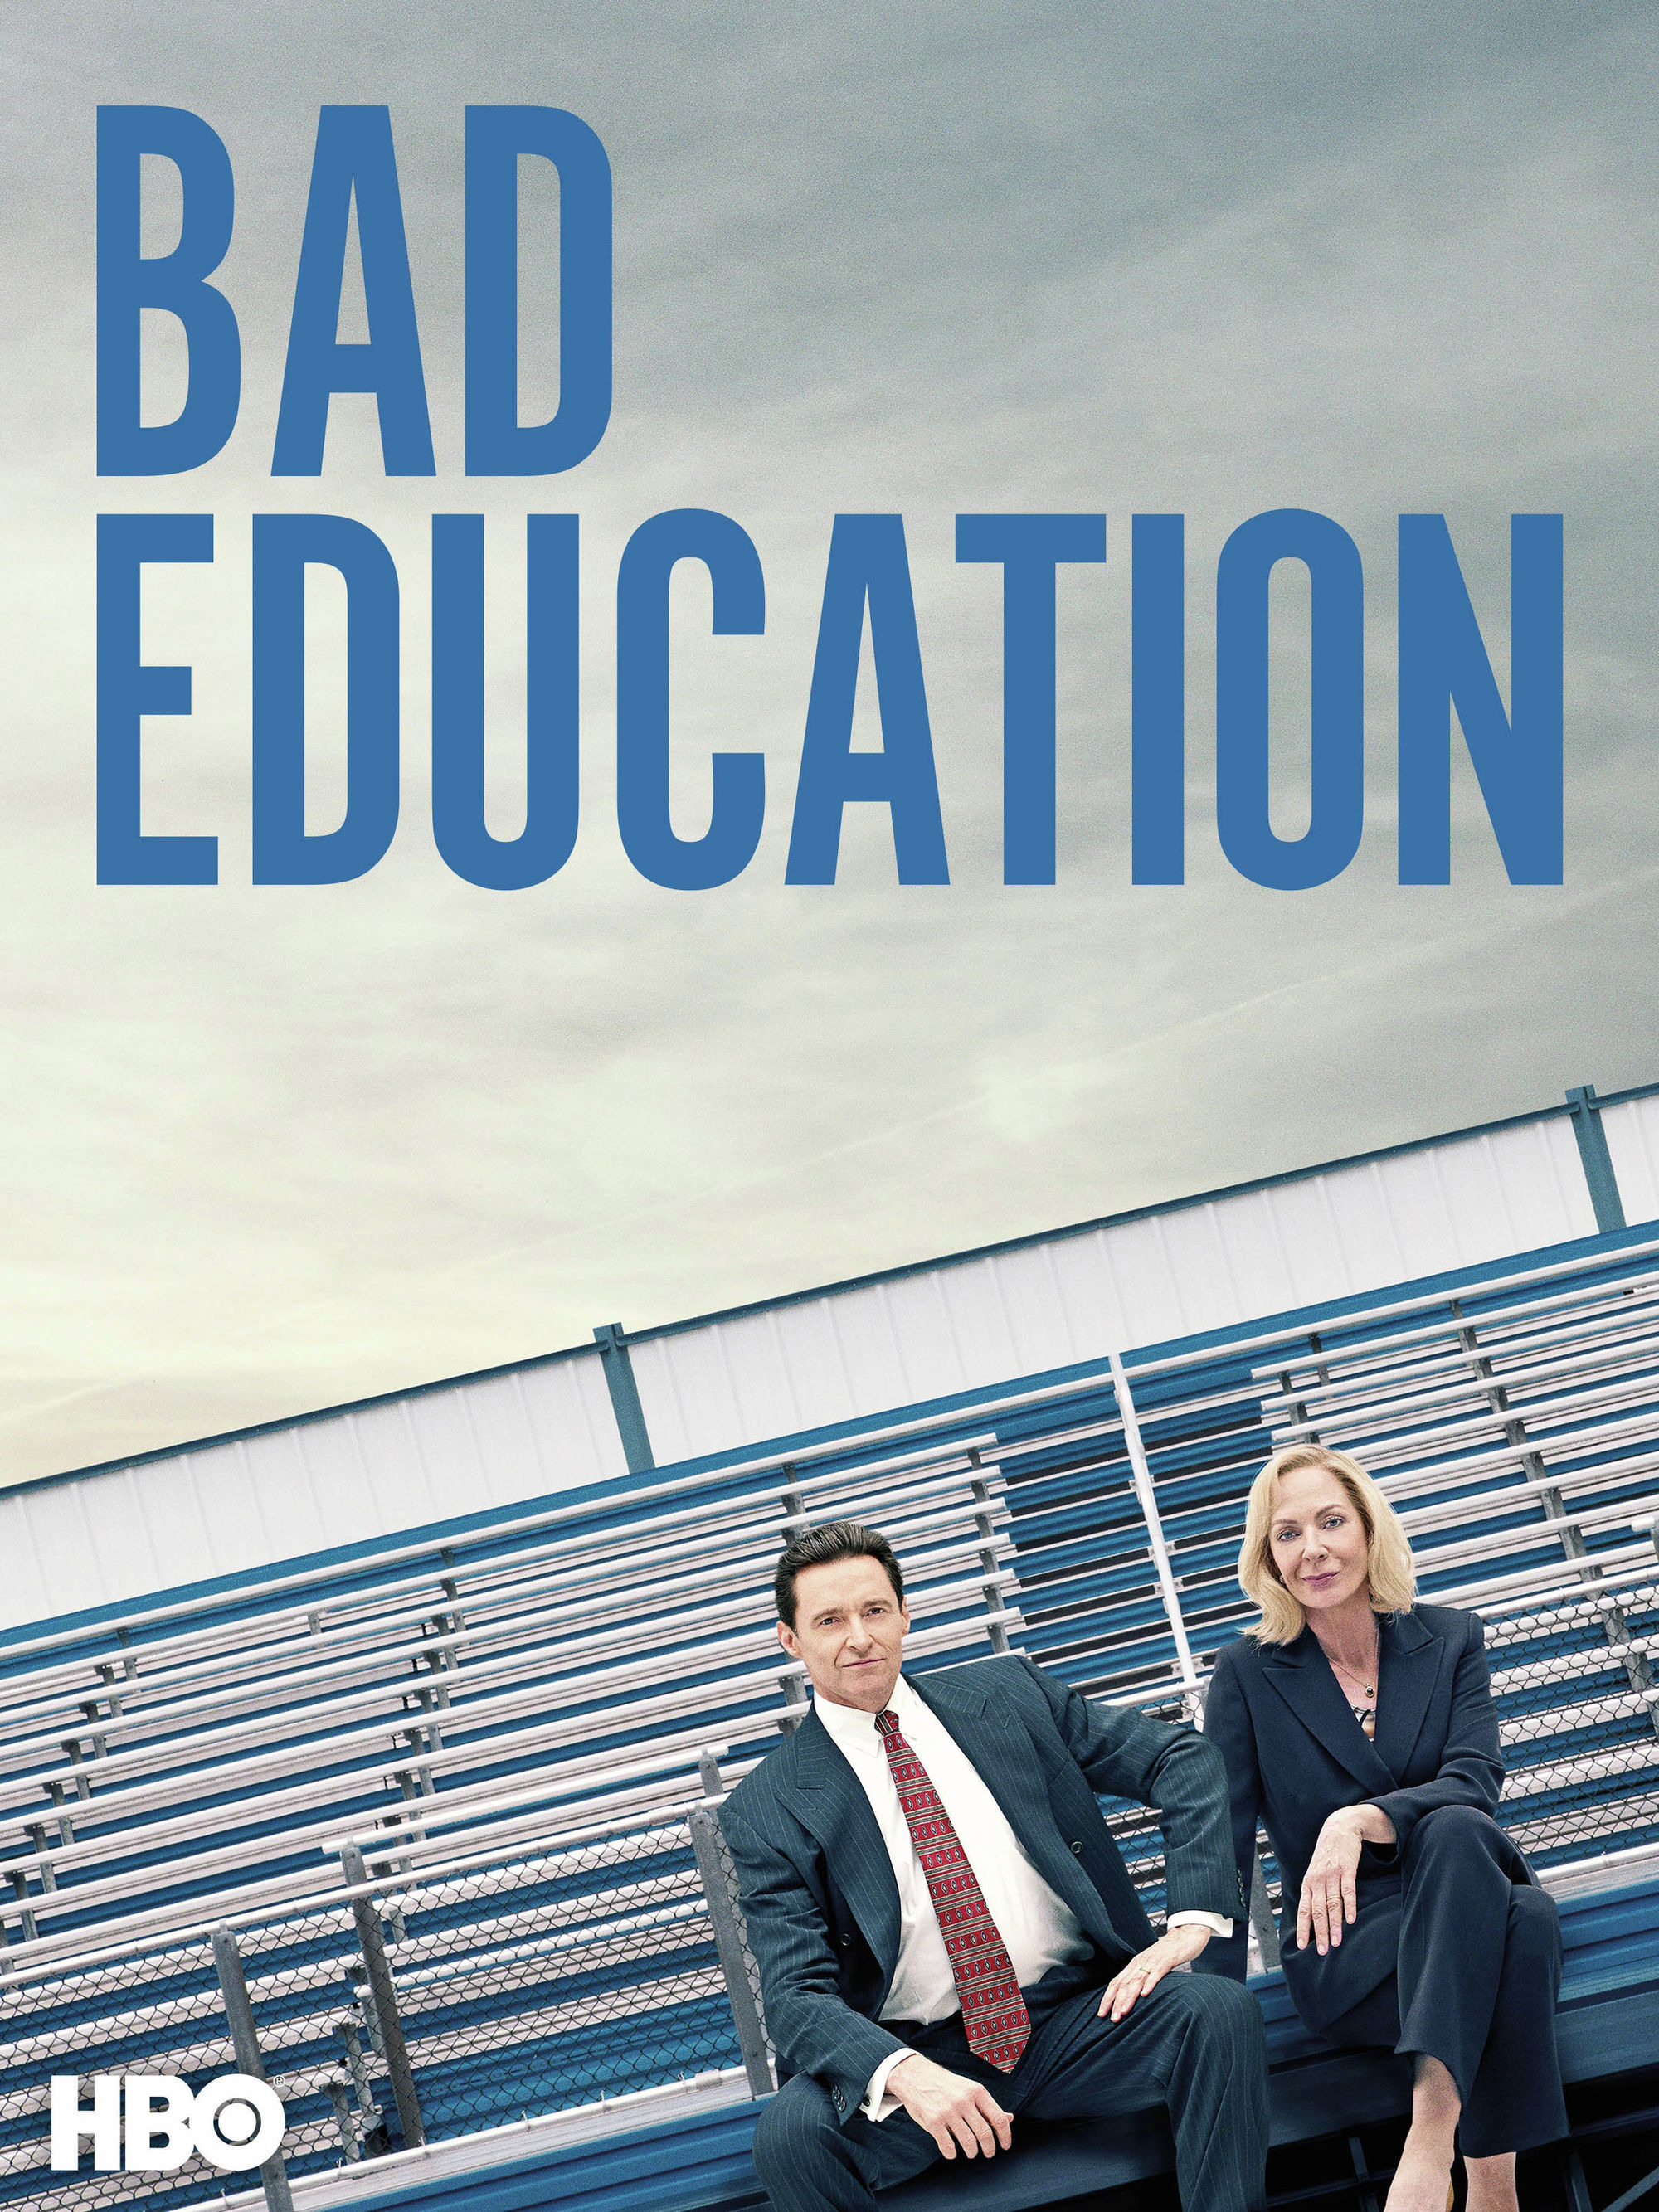 Bad Education